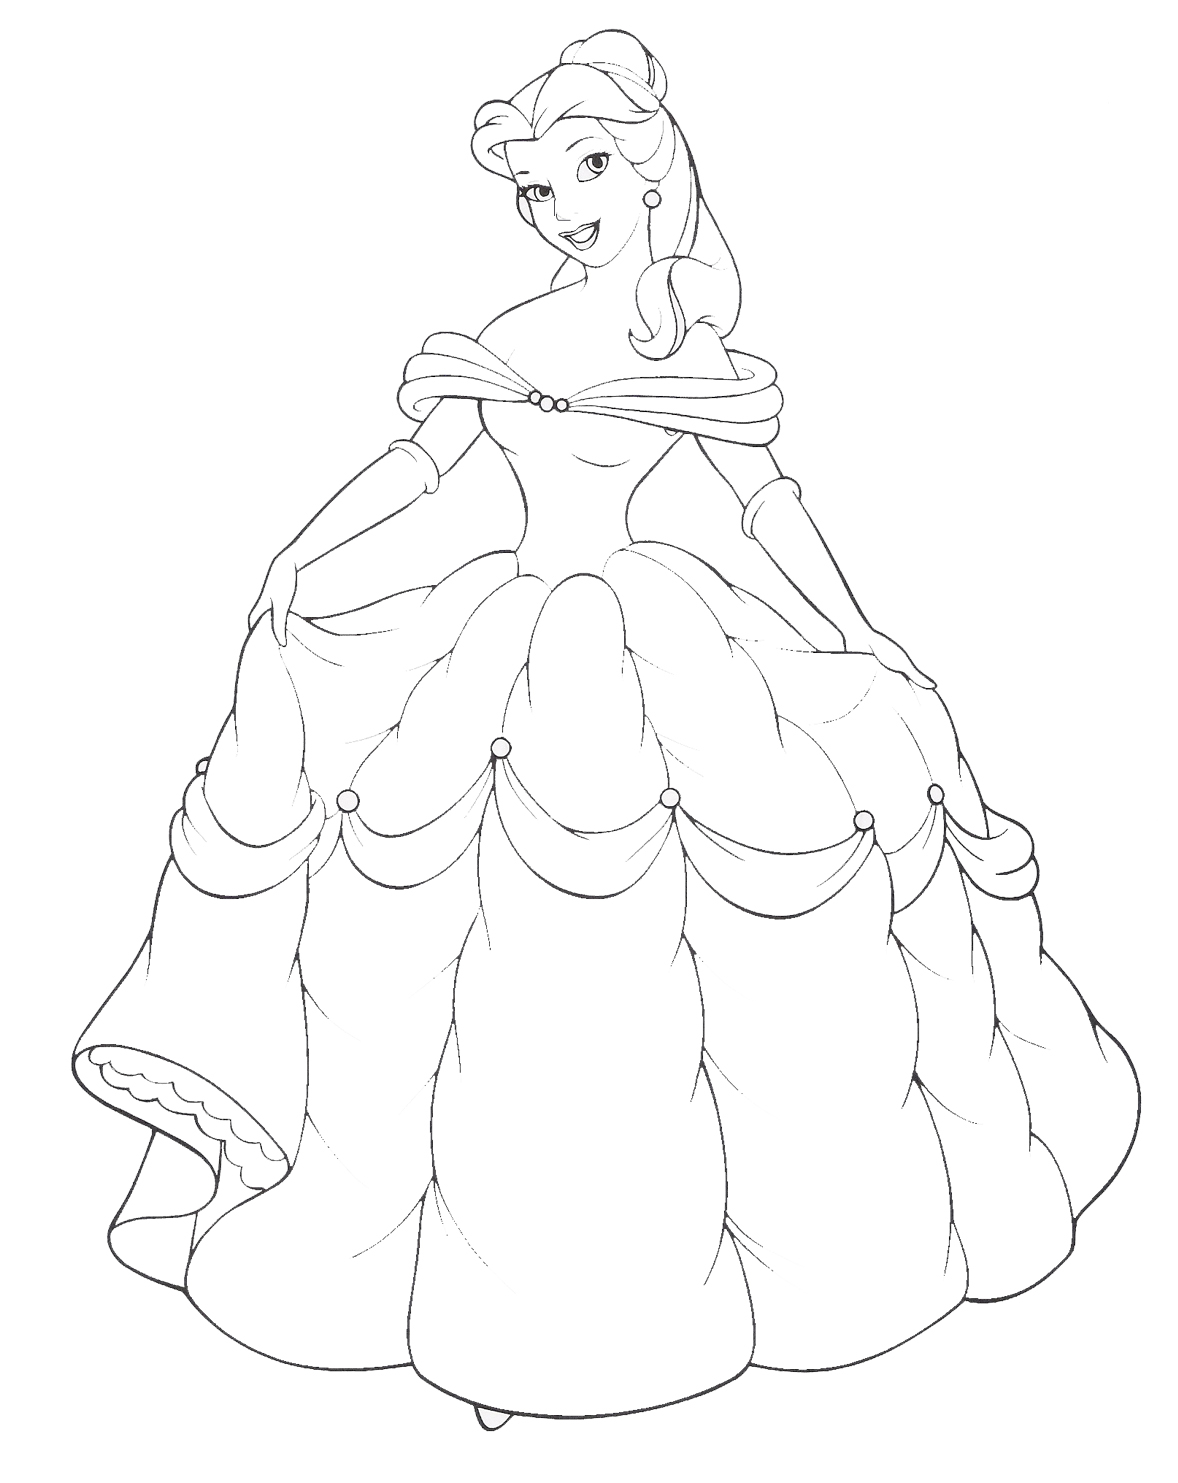 Ariel and eric and melody coloring pages